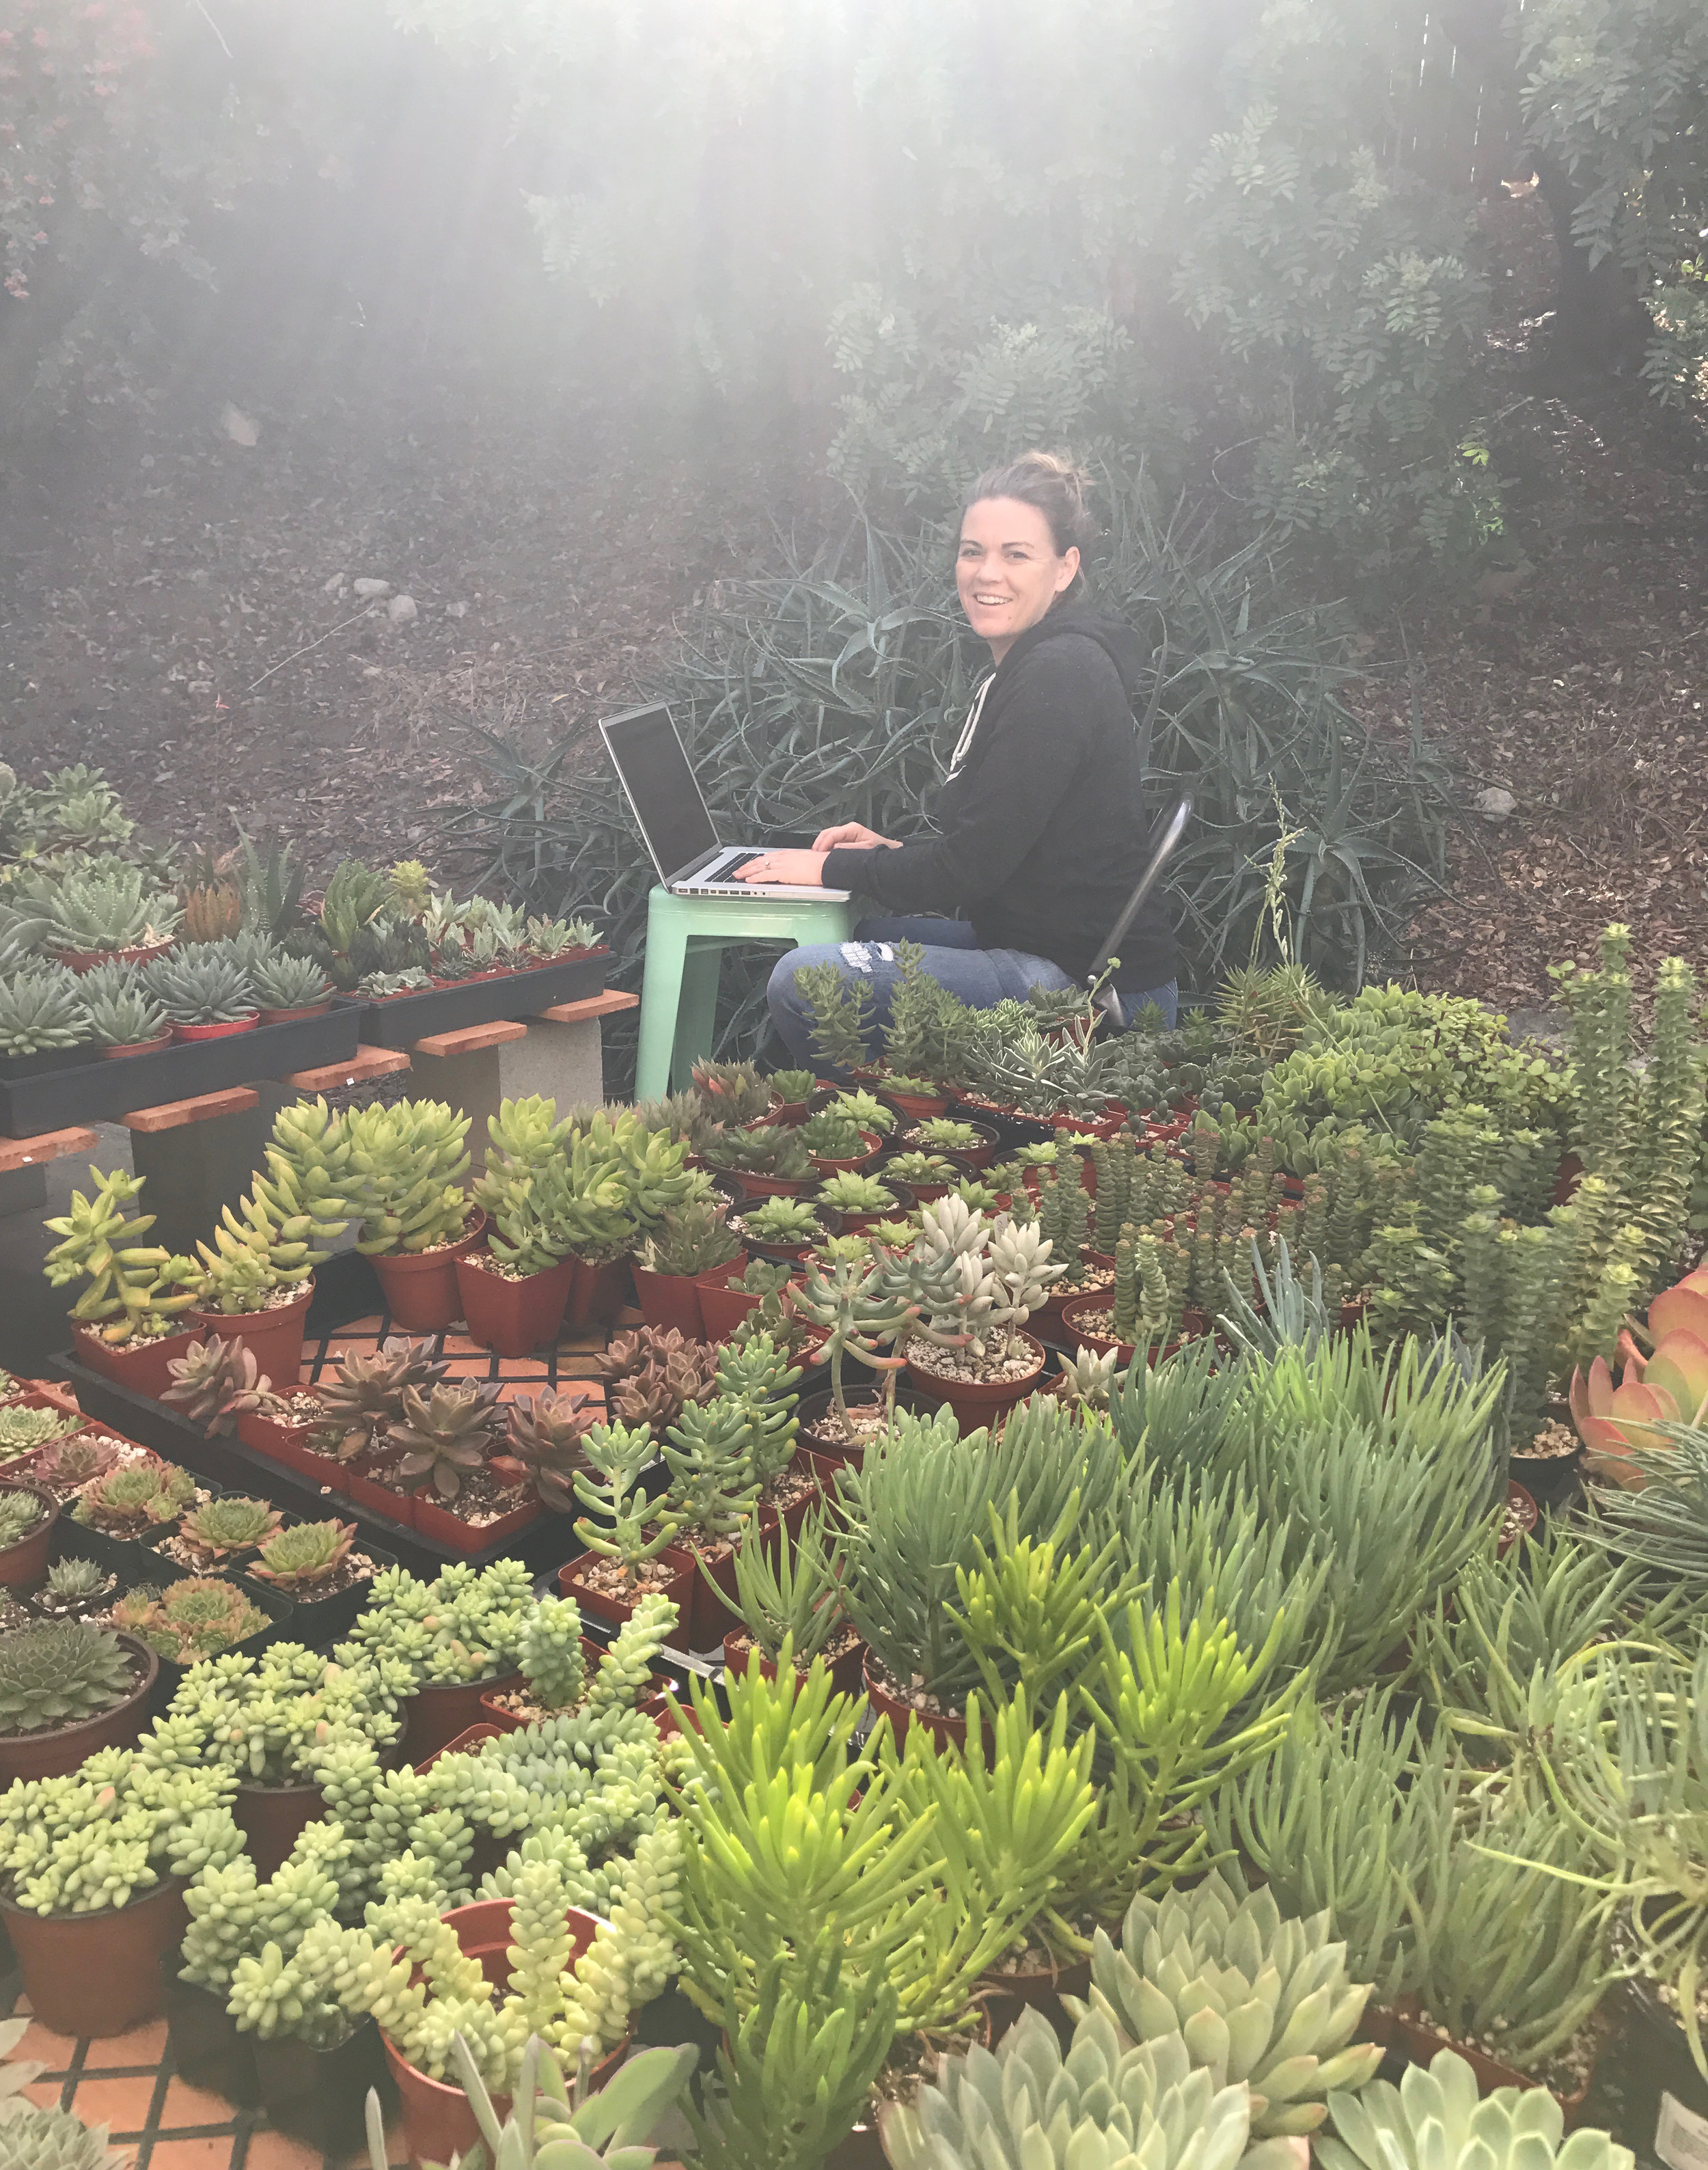 Krista taking inventory at our home nursery.